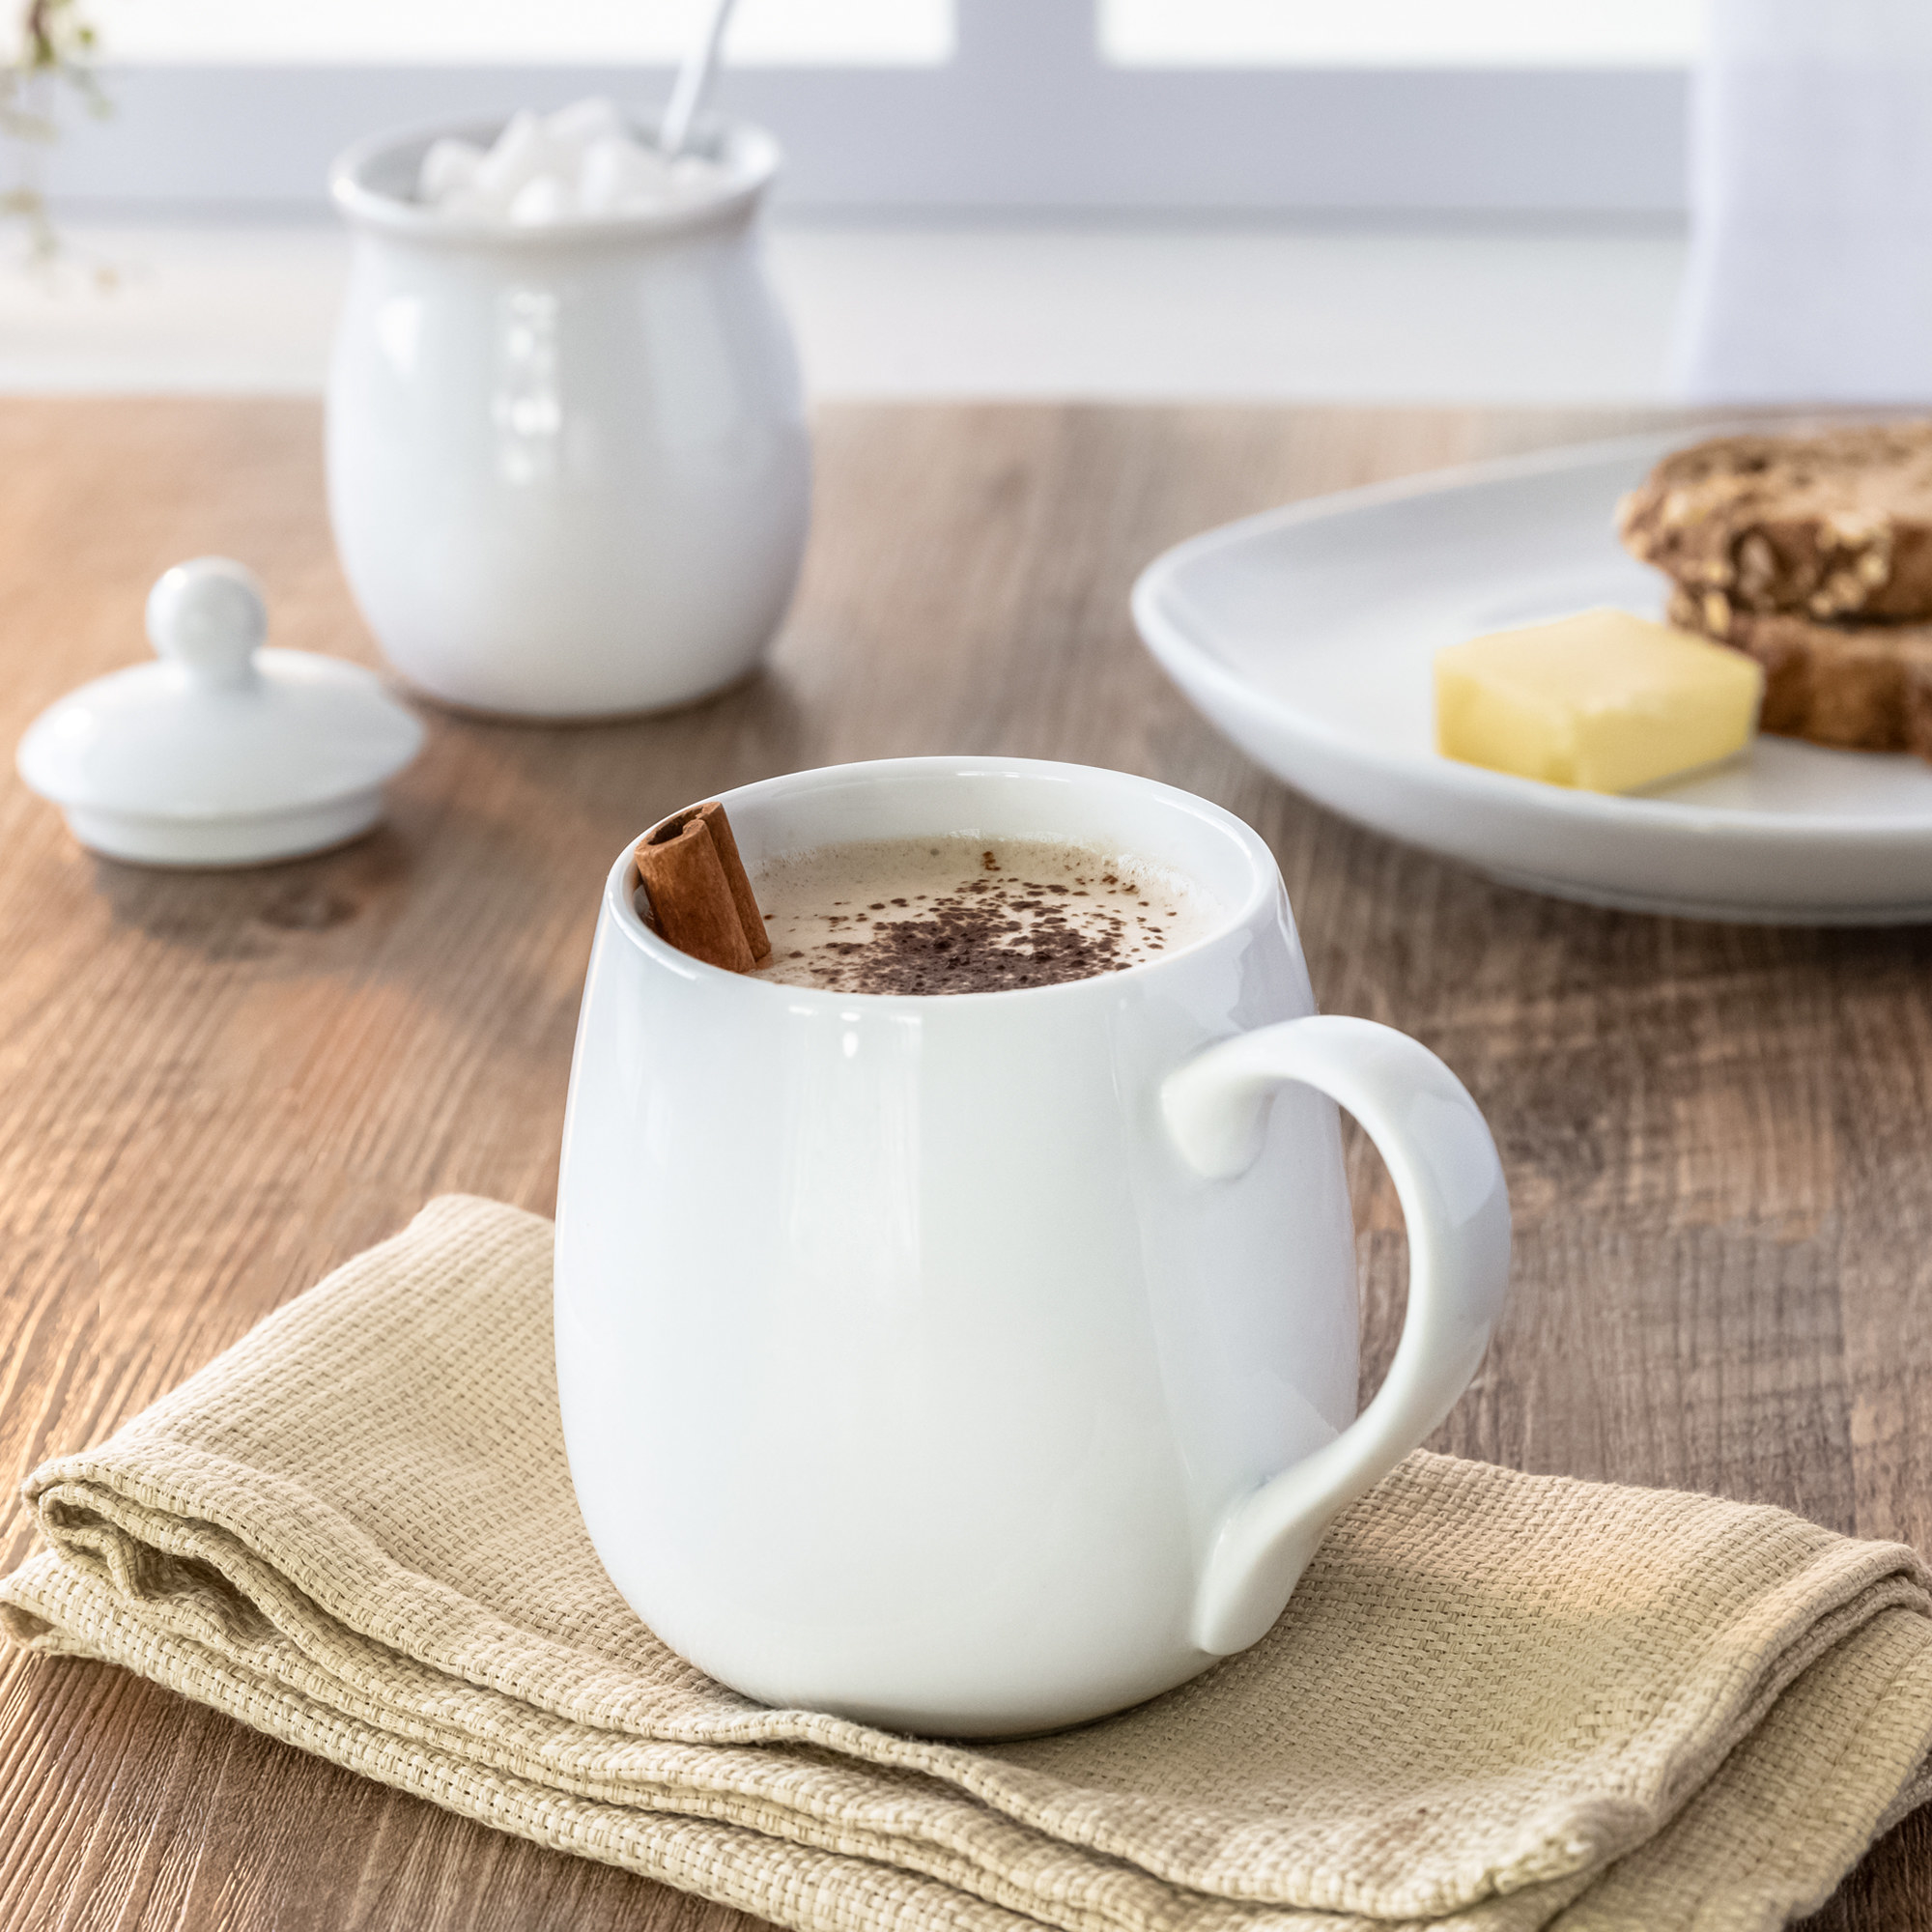 The mug on a kitchen table filled with coffee and a cinnamon stick